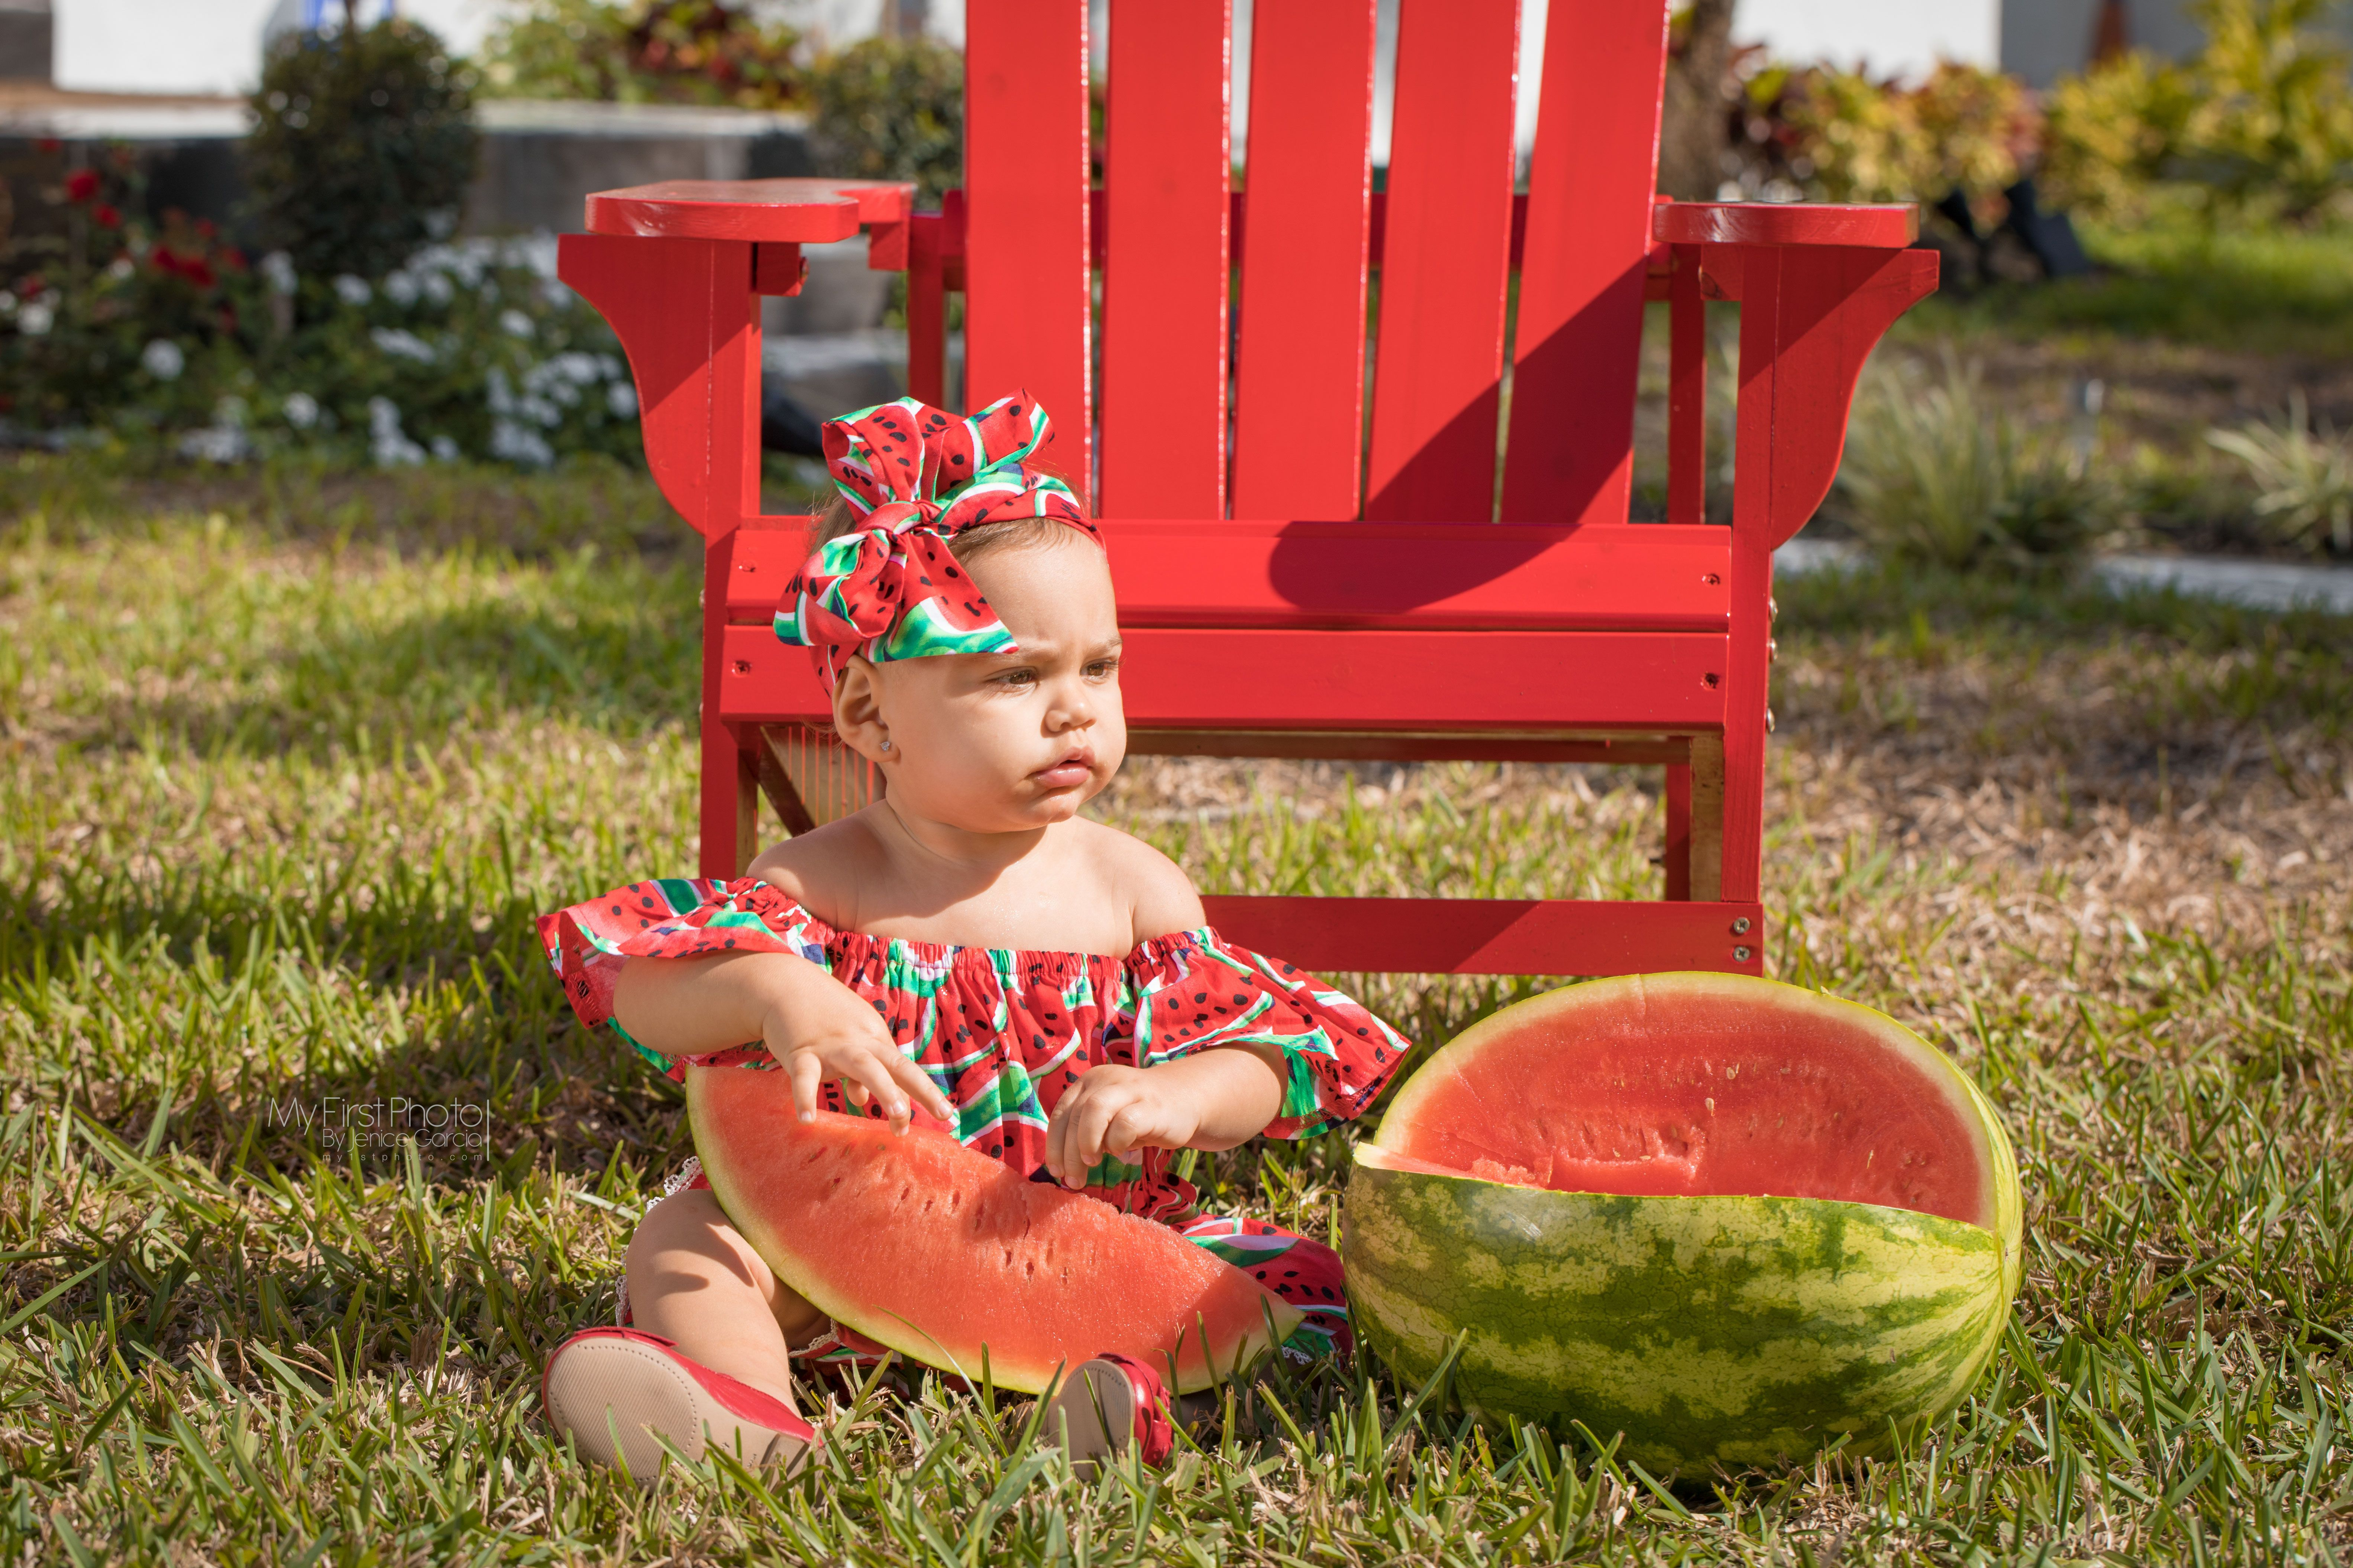 ac674d00c Victoria ❤ Watermelon outfit baby photography photoshoot 1 year old baby  girl